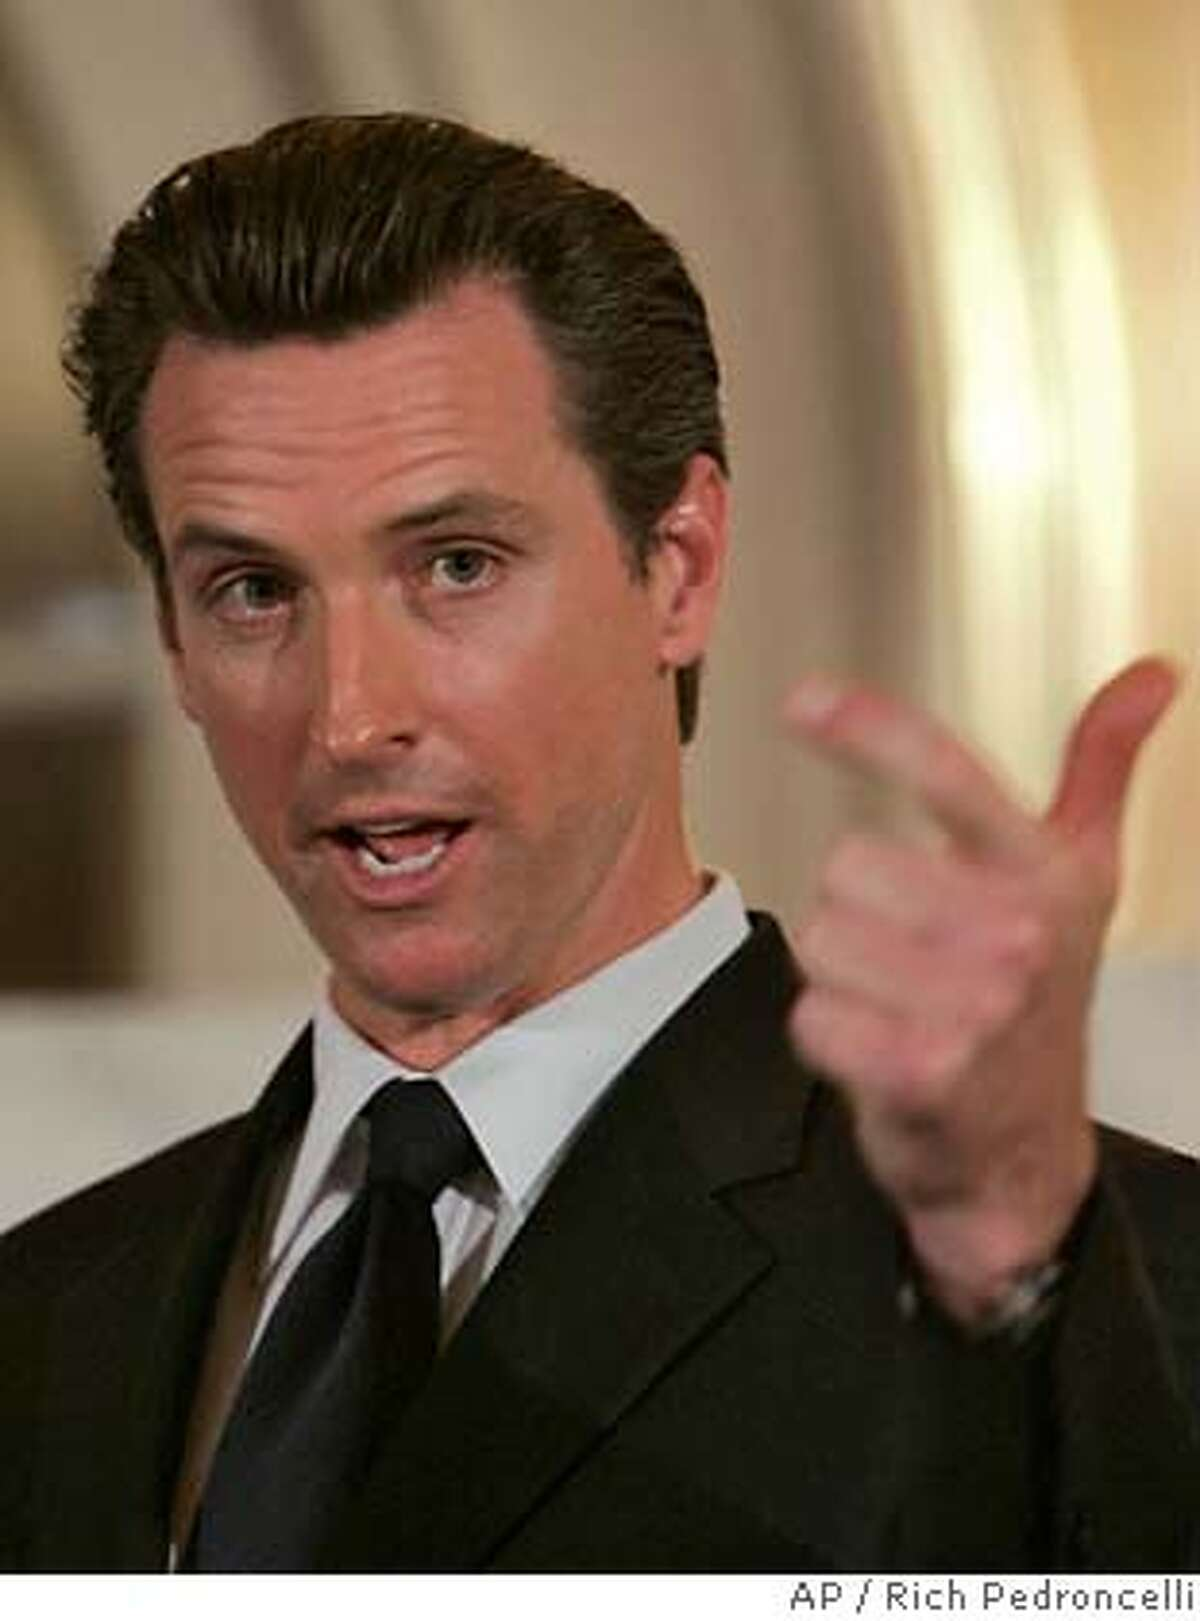 ###Live Caption:San Francisco Mayor Gavin Newsom gestures as he addresses the Sacramento Press Club in Sacramento, Calif., Tuesday, March 25, 2008. Newsom is criticizing deep cuts to California's Medi-Cal program and says he is considering a lawsuit to reinstate some of the funding. (AP Photo/Rich Pedroncelli)###Caption History:San Francisco Mayor Gavin Newsom gestures as he addresses the Sacramento Press Club in Sacramento, Calif., Tuesday, March 25, 2008. Newsom is criticizing deep cuts to California's Medi-Cal program and says he is considering a lawsuit to reinstate some of the funding. (AP Photo/Rich Pedroncelli) Ran on: 04-09-2008 Ran on: 04-09-2008 Ran on: 04-16-2008 Mayor Gavin Newsom thinks mandatory spending acts should have a known money source. Ran on: 04-16-2008 Mayor Gavin Newsom thinks mandatory spending acts should have a known money source. Ran on: 04-16-2008 Ran on: 04-16-2008 Ran on: 04-16-2008###Notes:Gavin Newsom###Special Instructions: